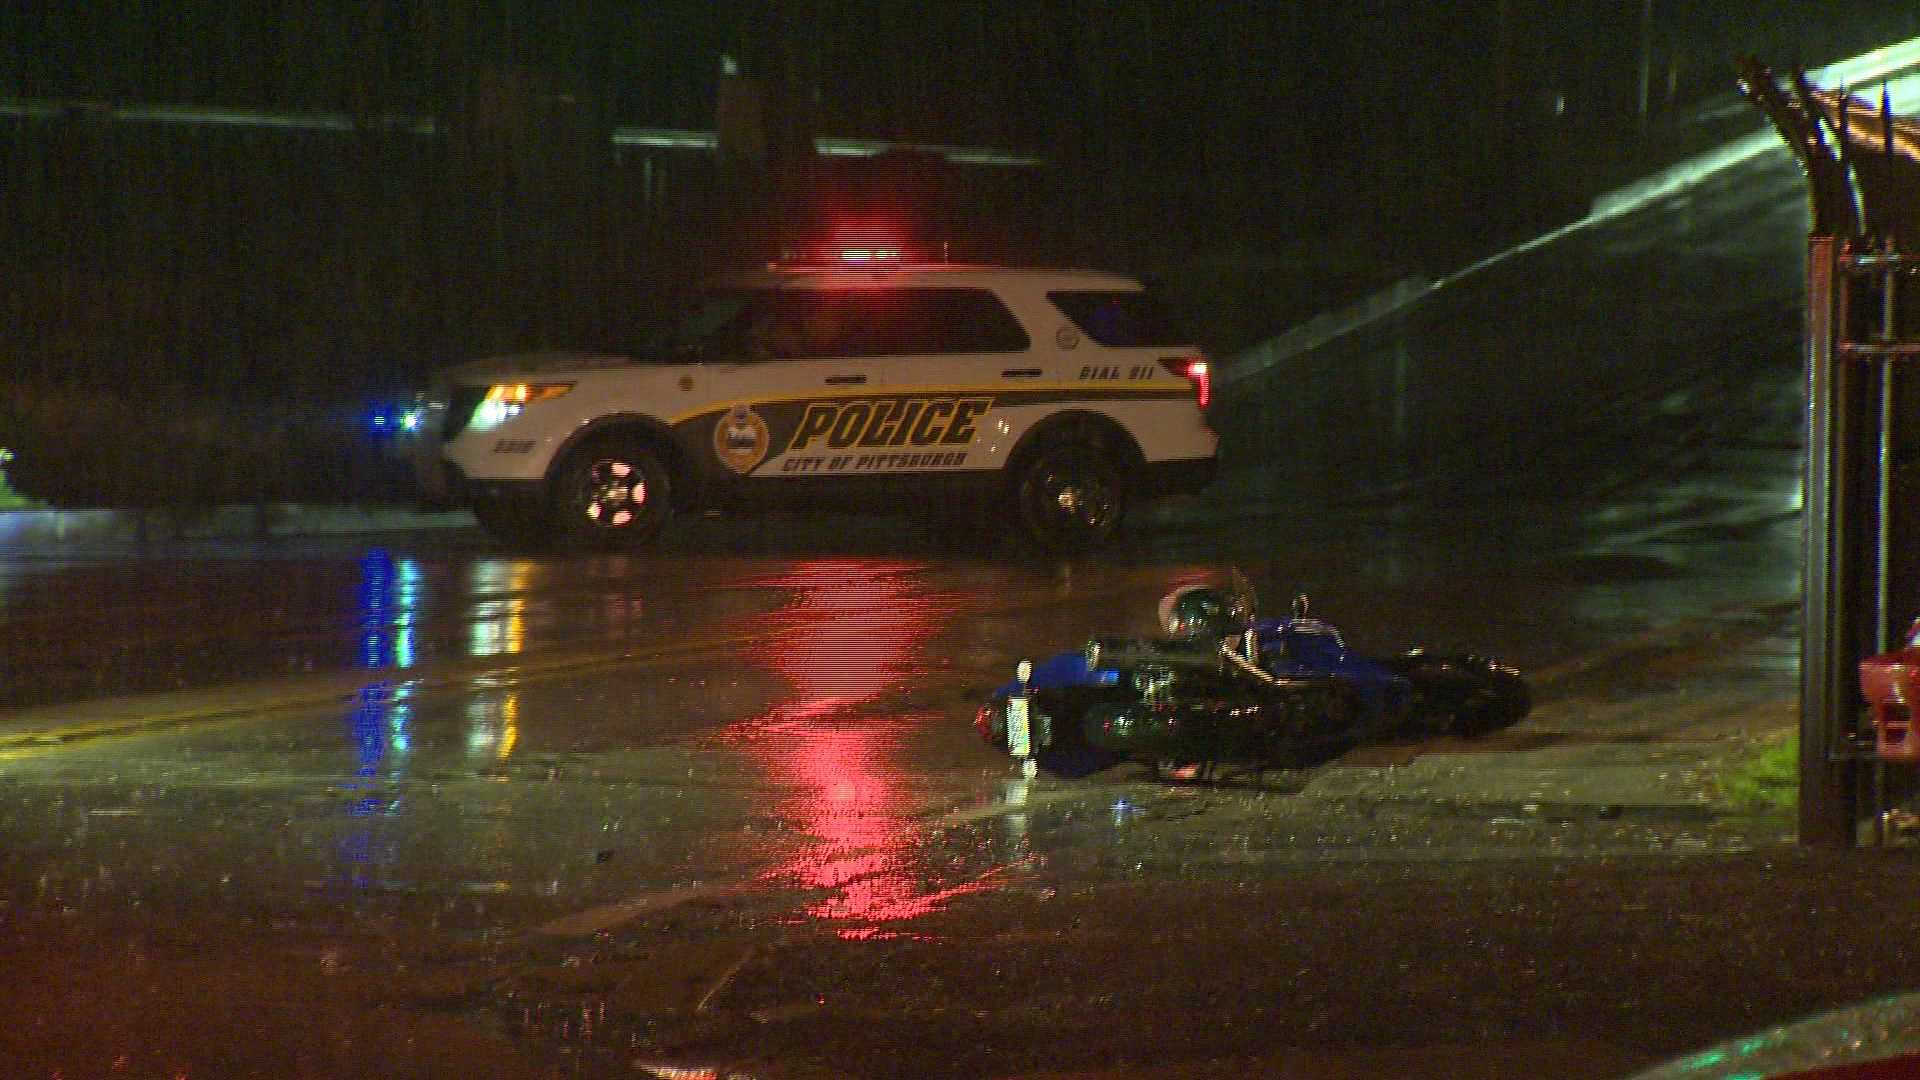 1 injured after car, motorcycle crash in South Side flats